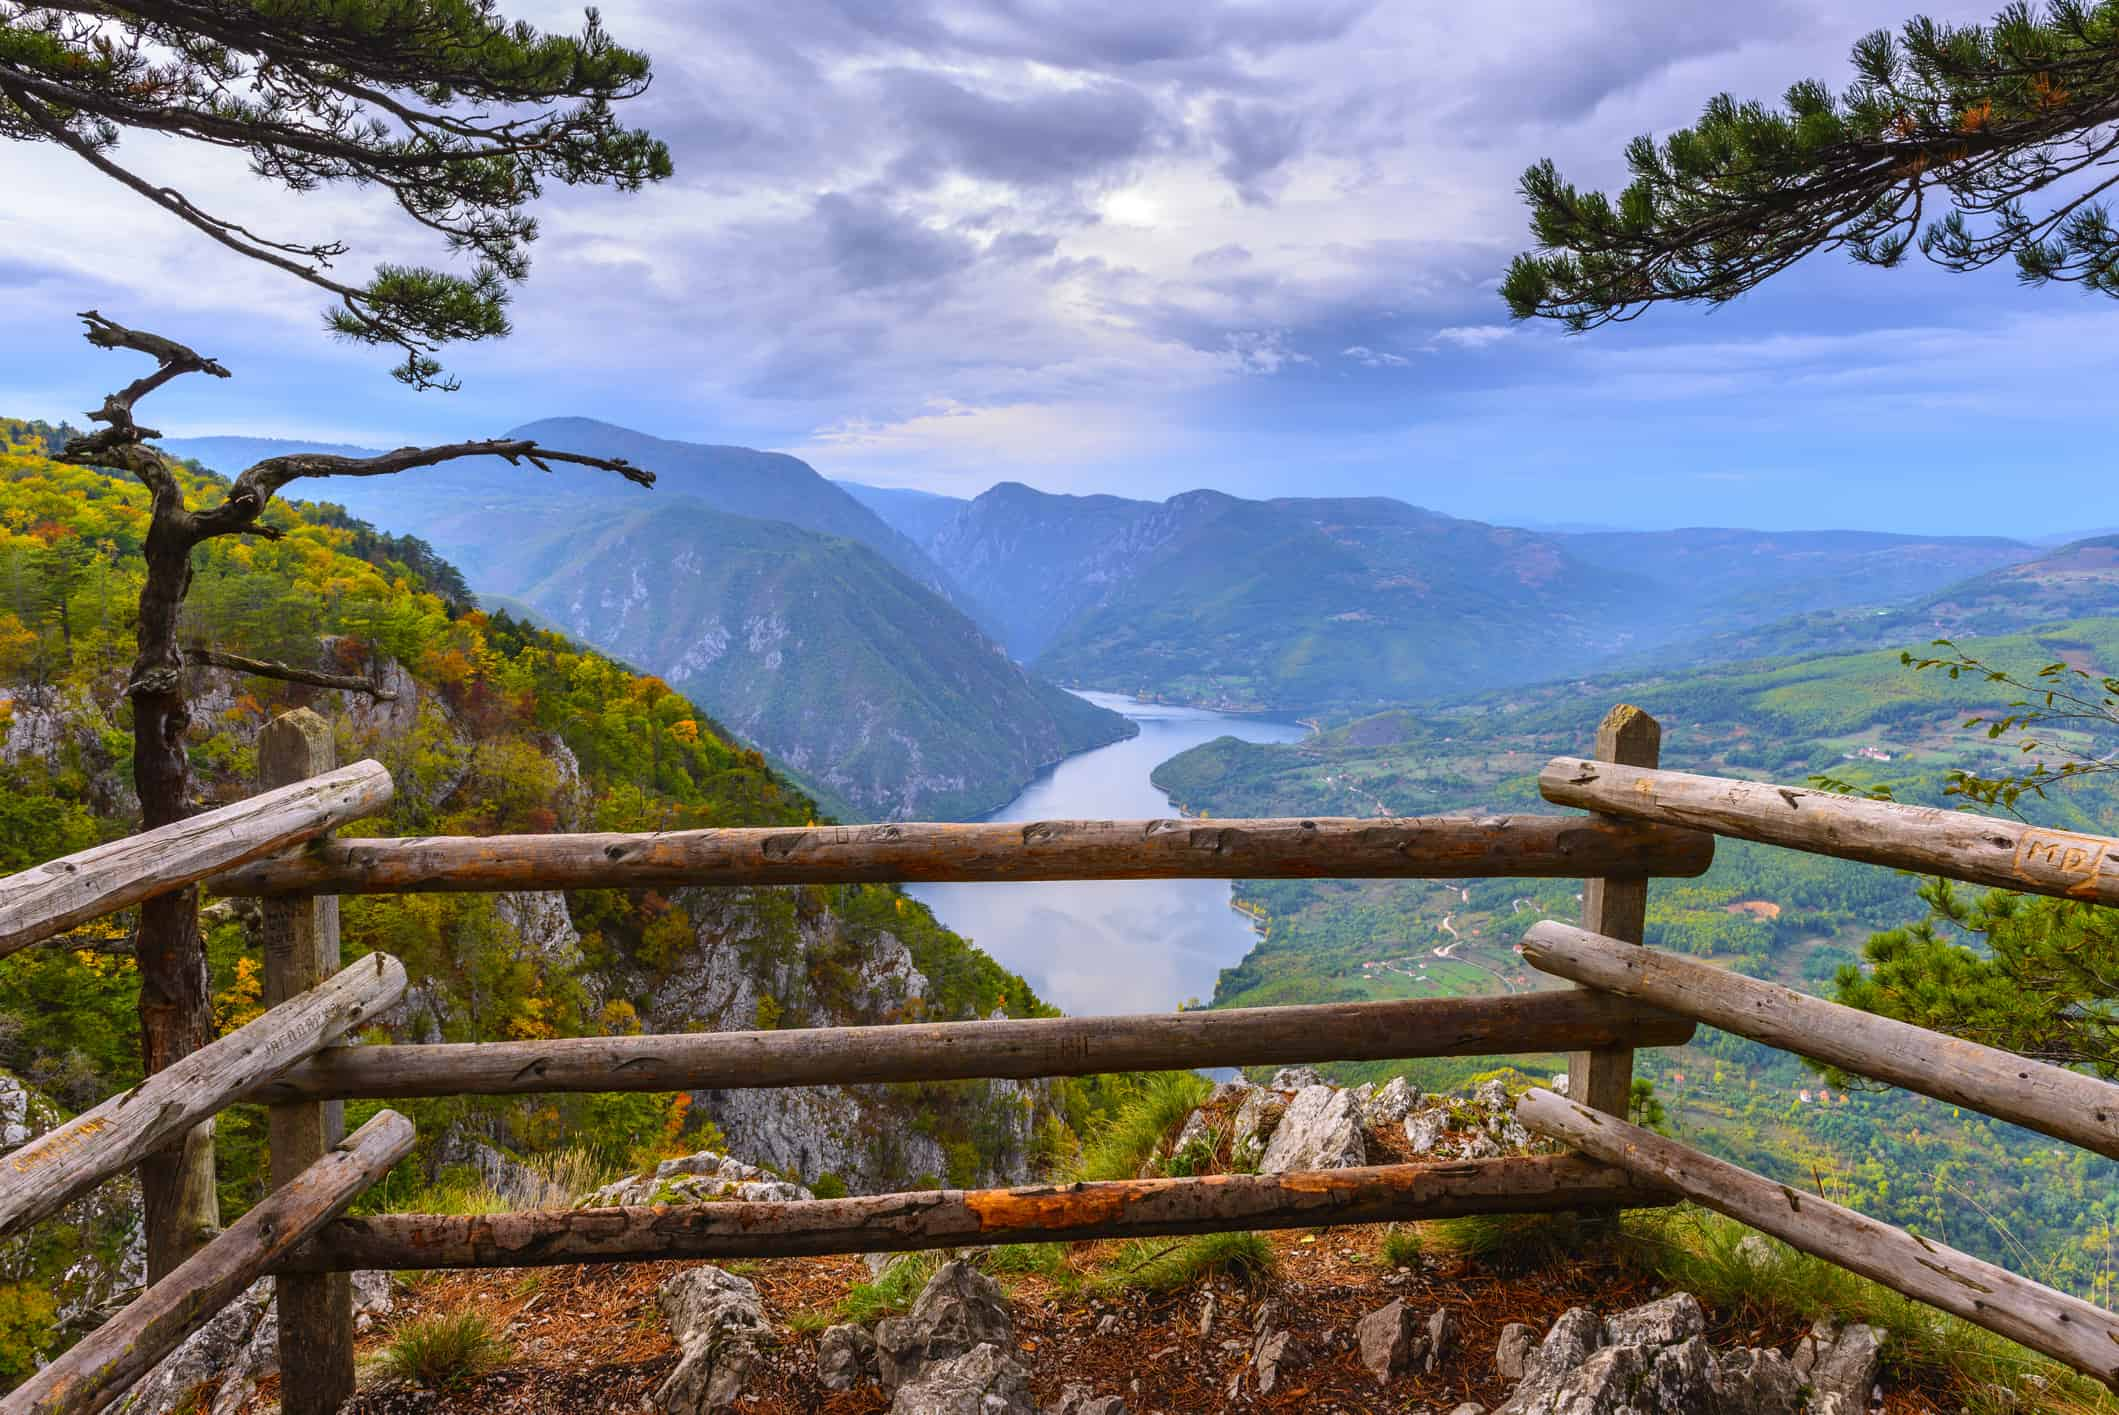 Banjska stena viewpoint at Tara National Park, Serbia